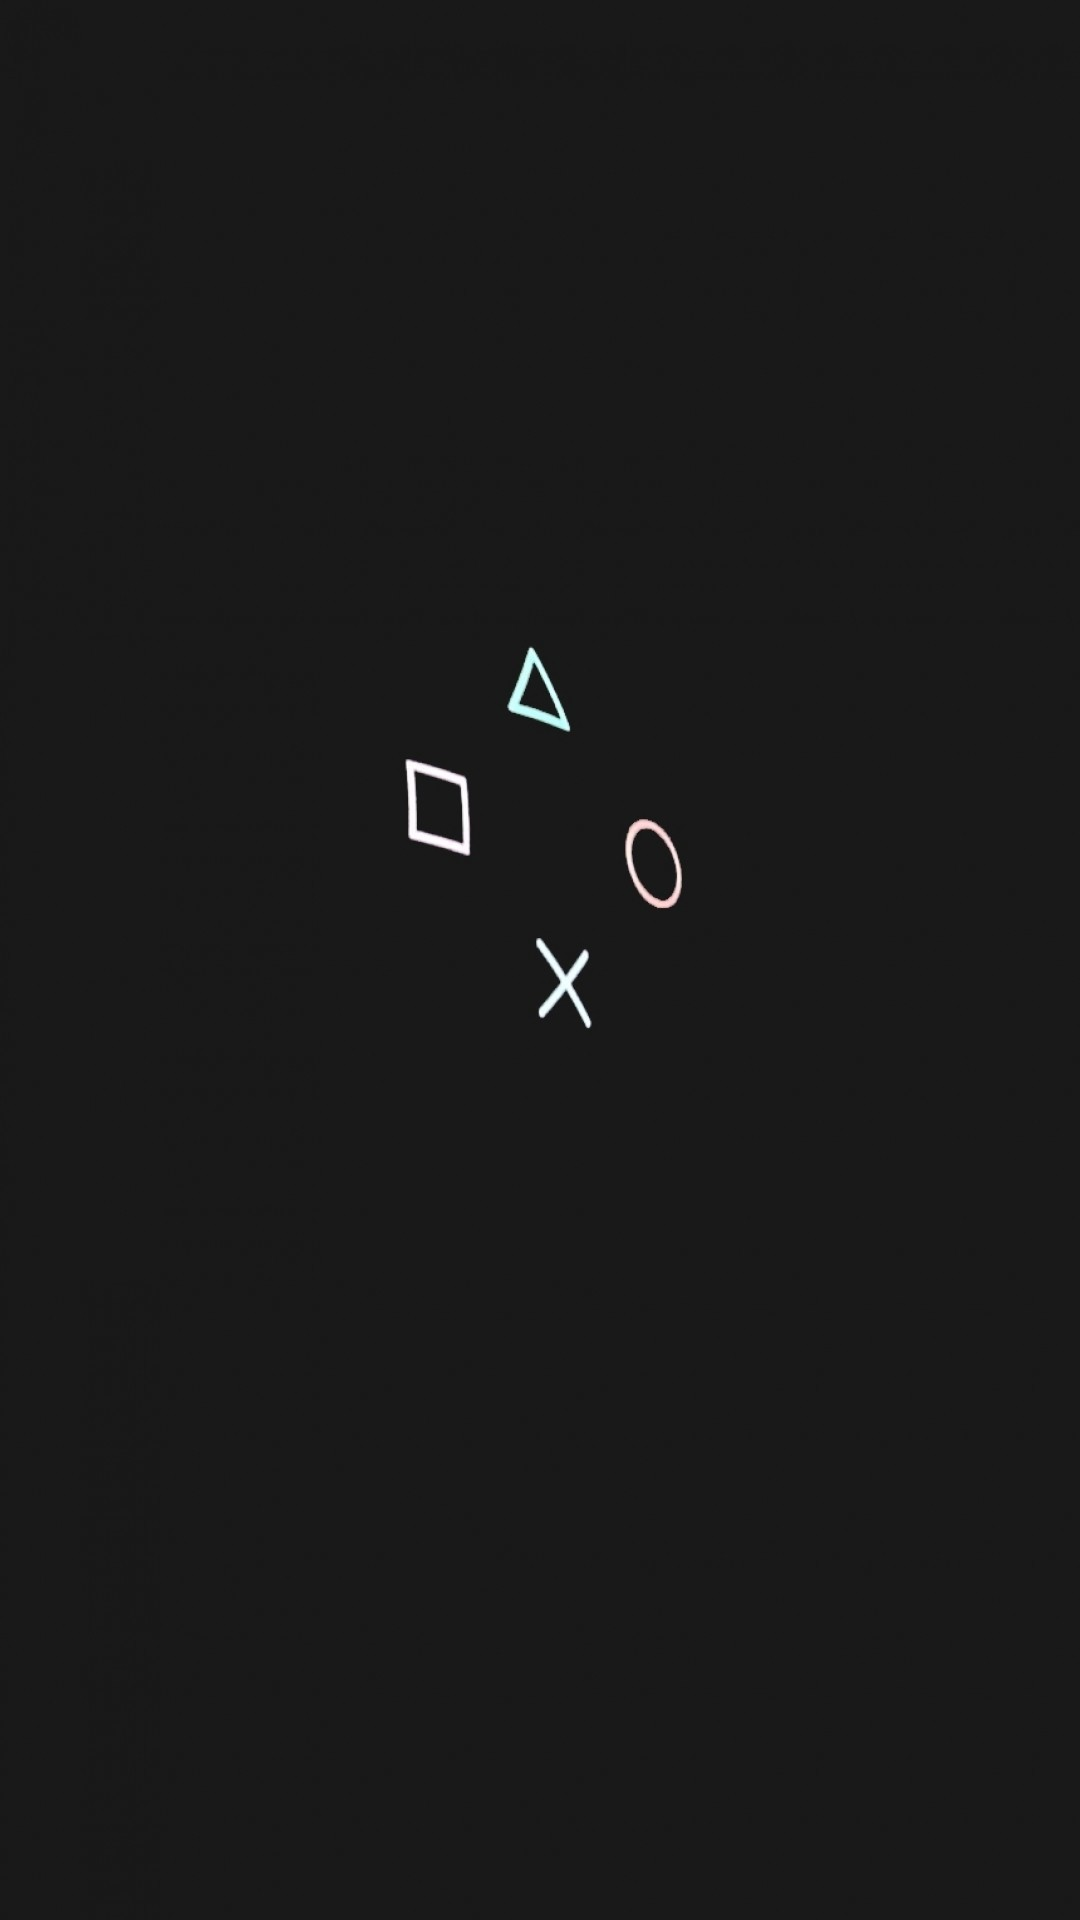 1080x1920 1920x1080 cool-playstation-wallpapers--WTG3085419